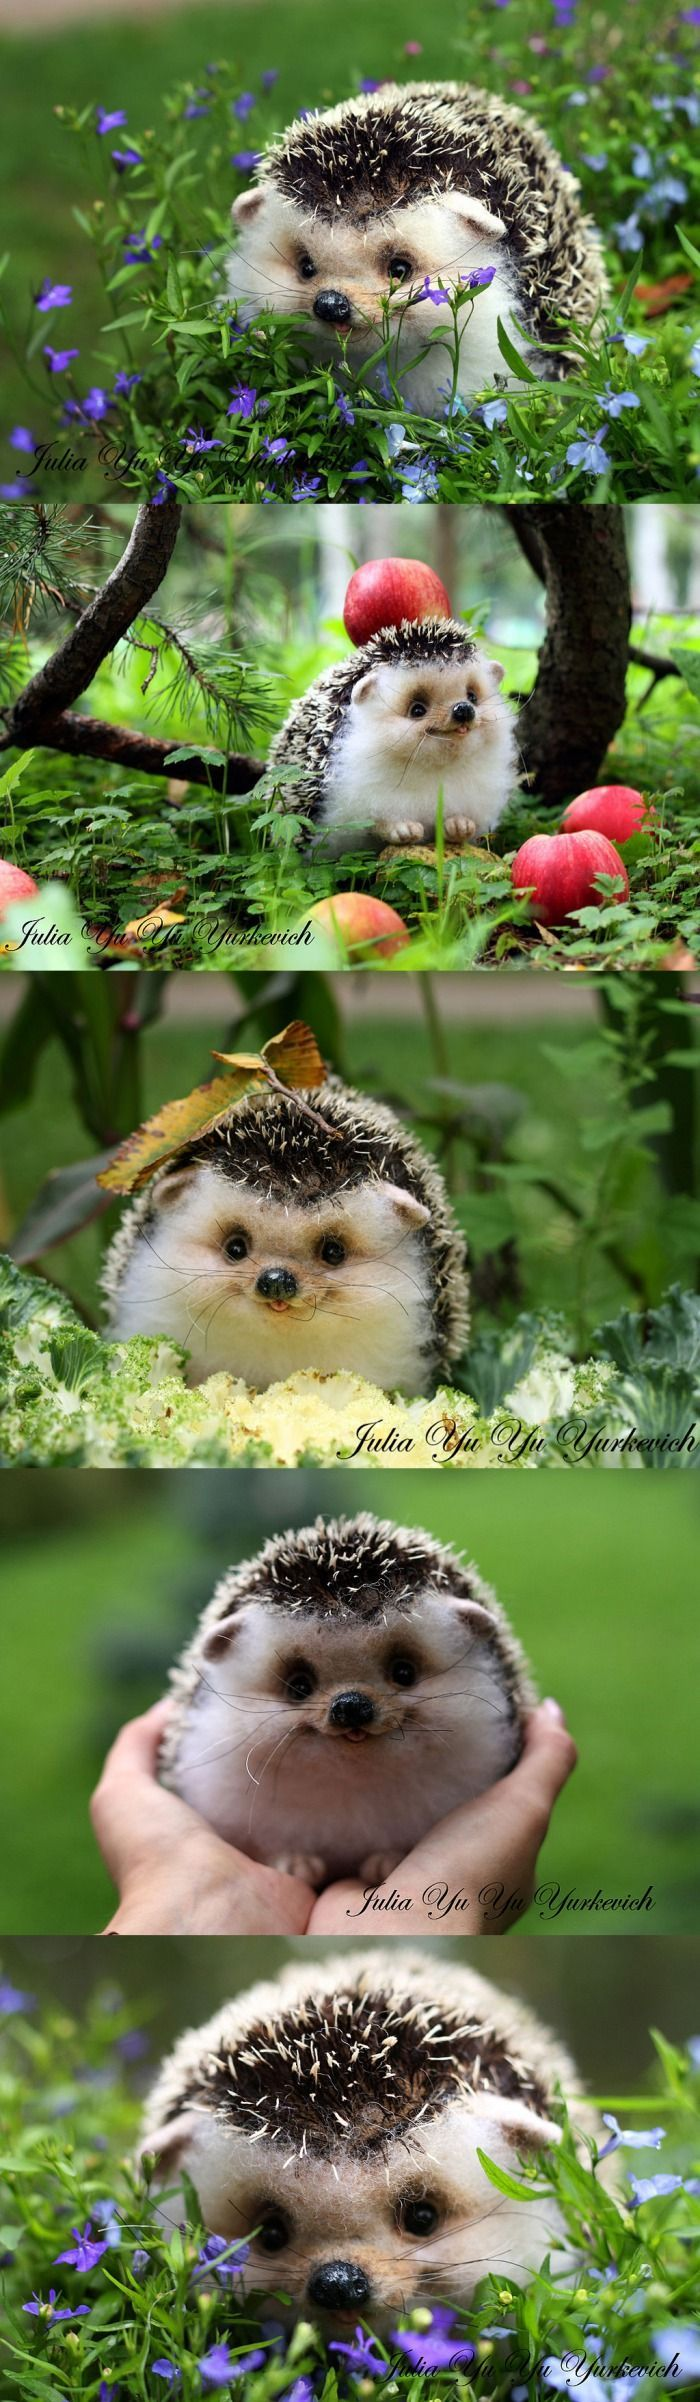 best cute animals images on pinterest fluffy pets